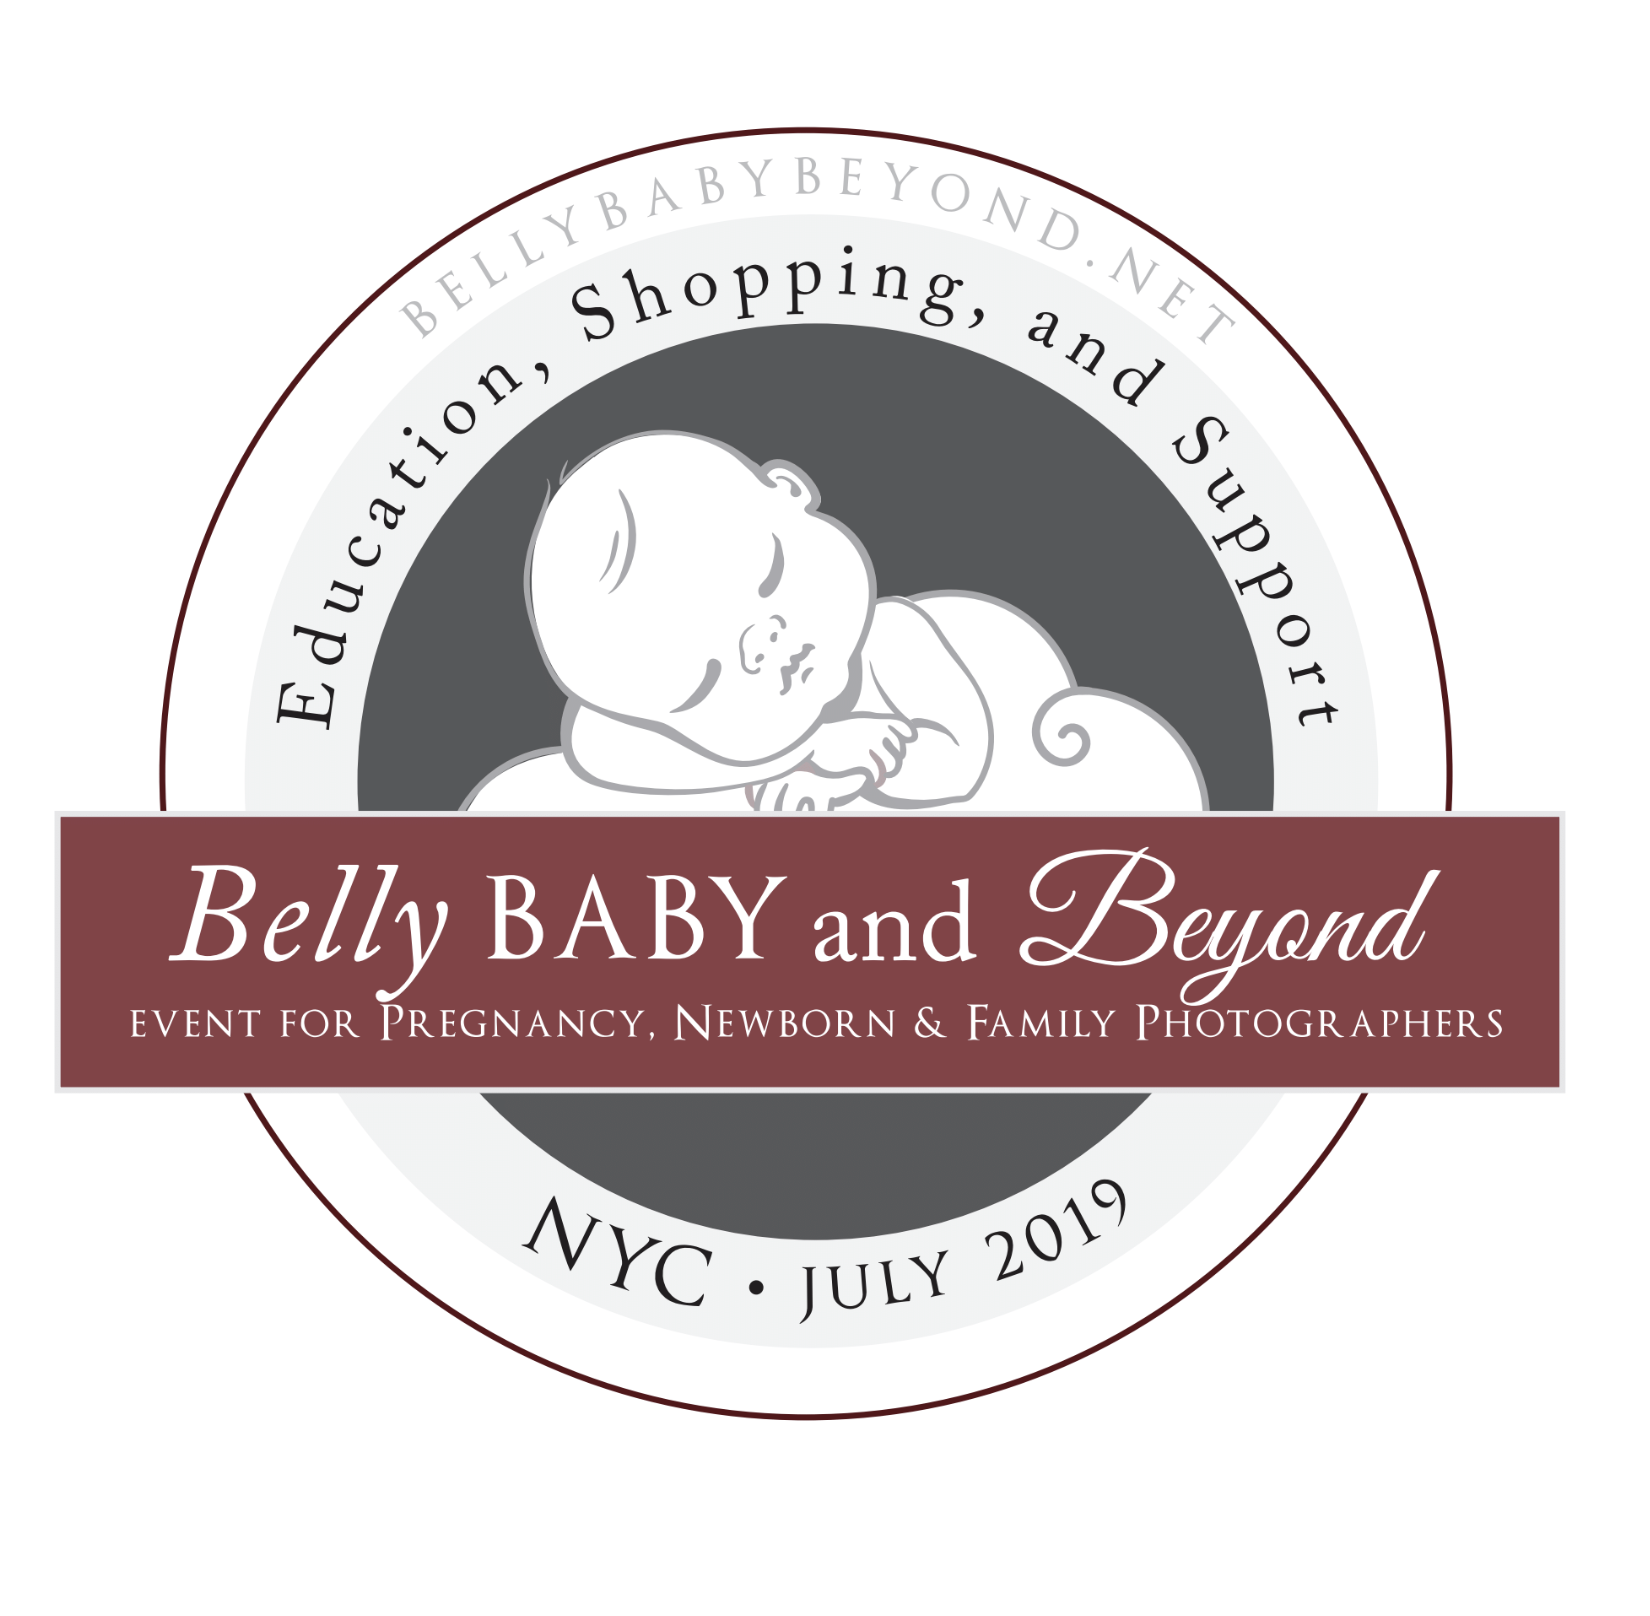 BBB NYC 2019 | Belly, Baby and Beyond